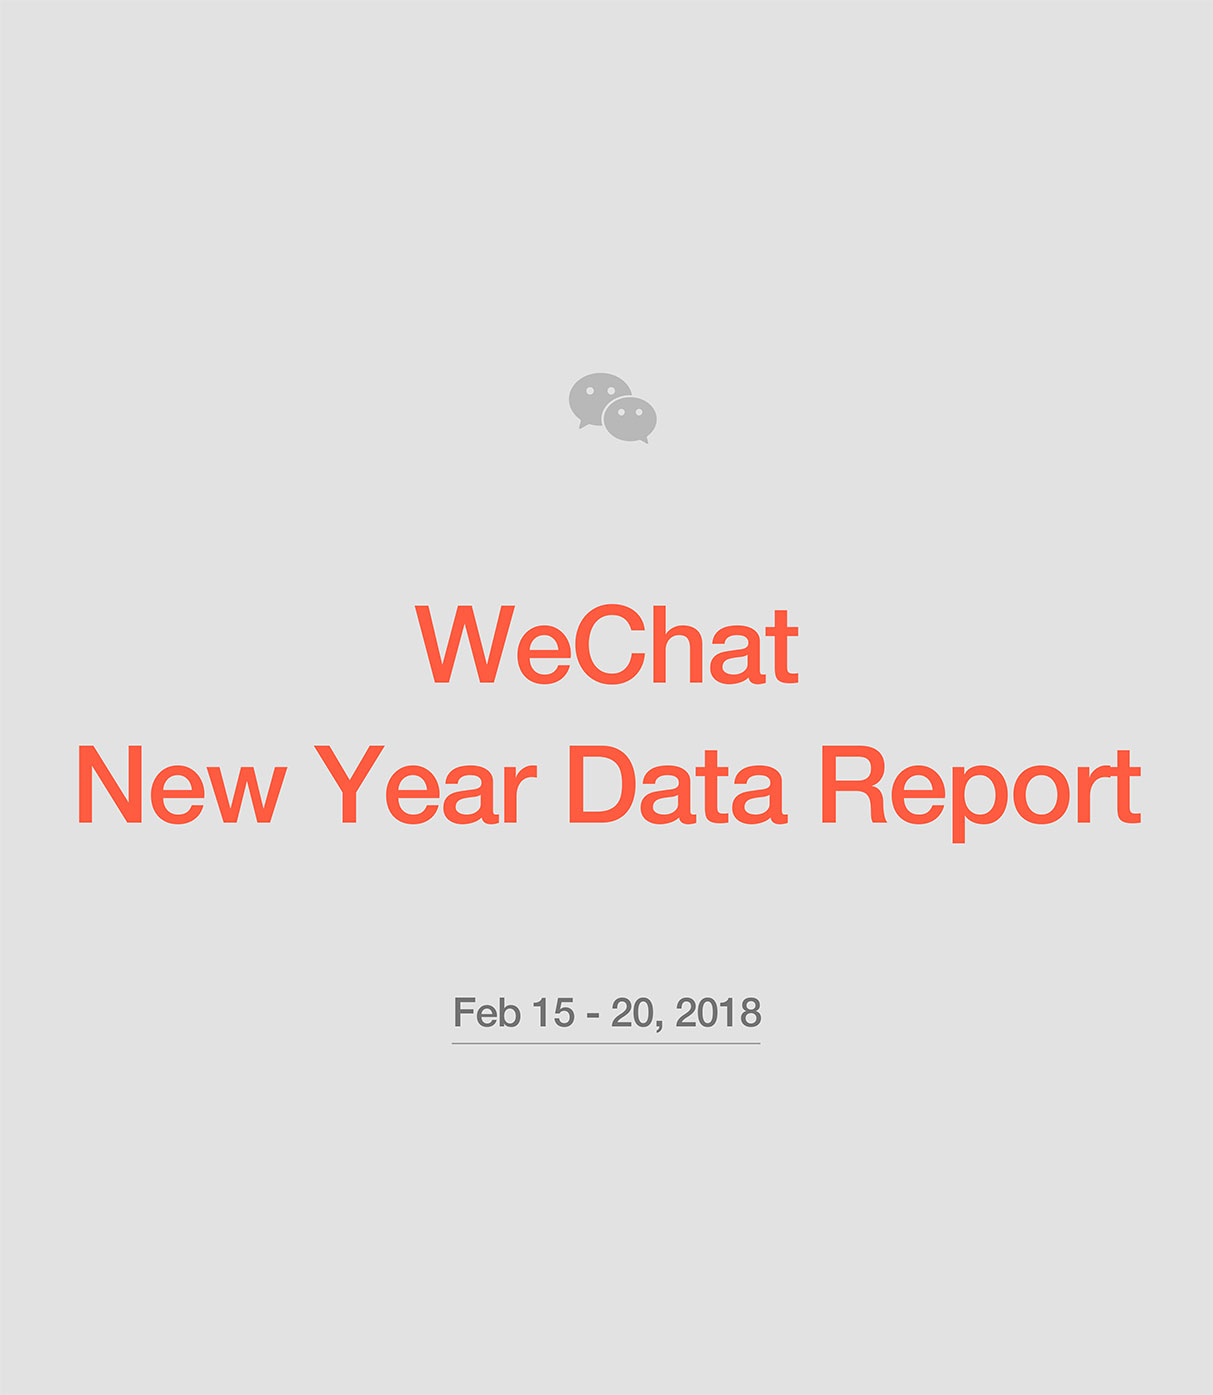 WeChat New Year Data Report 2018